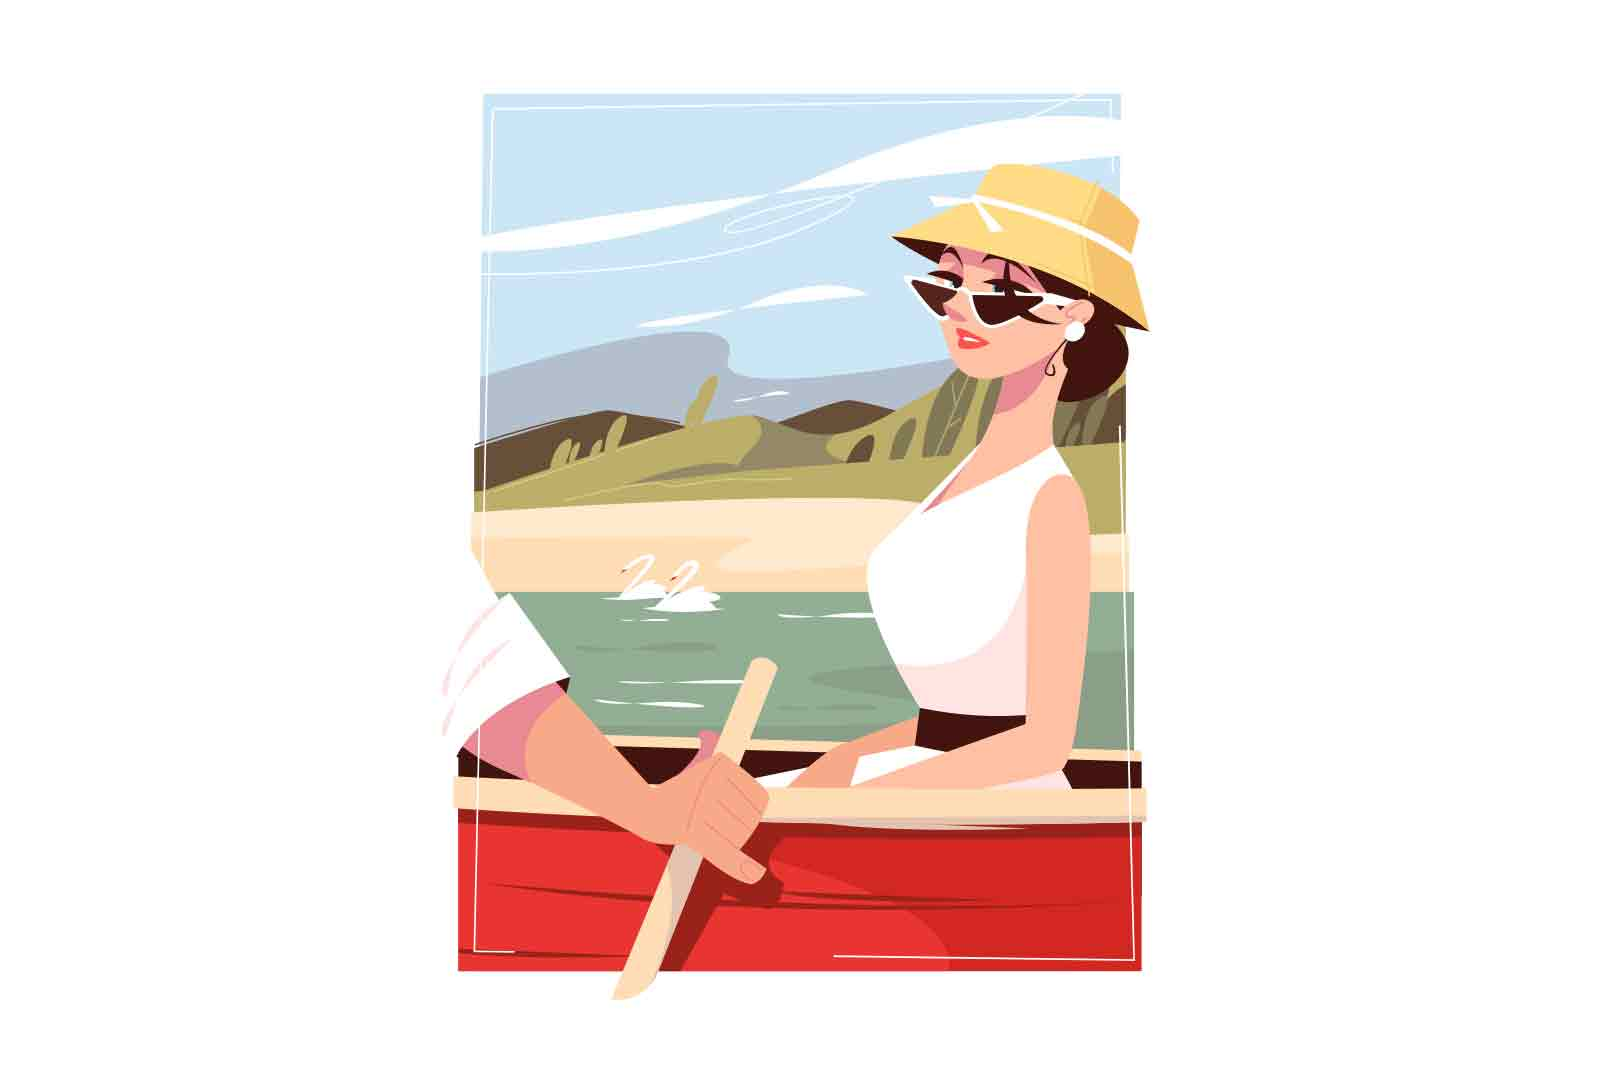 Lovers enjoy ride in boat vector illustration. Woman in hat on river with man flat style. Relationship, nature, outdoors activity concept